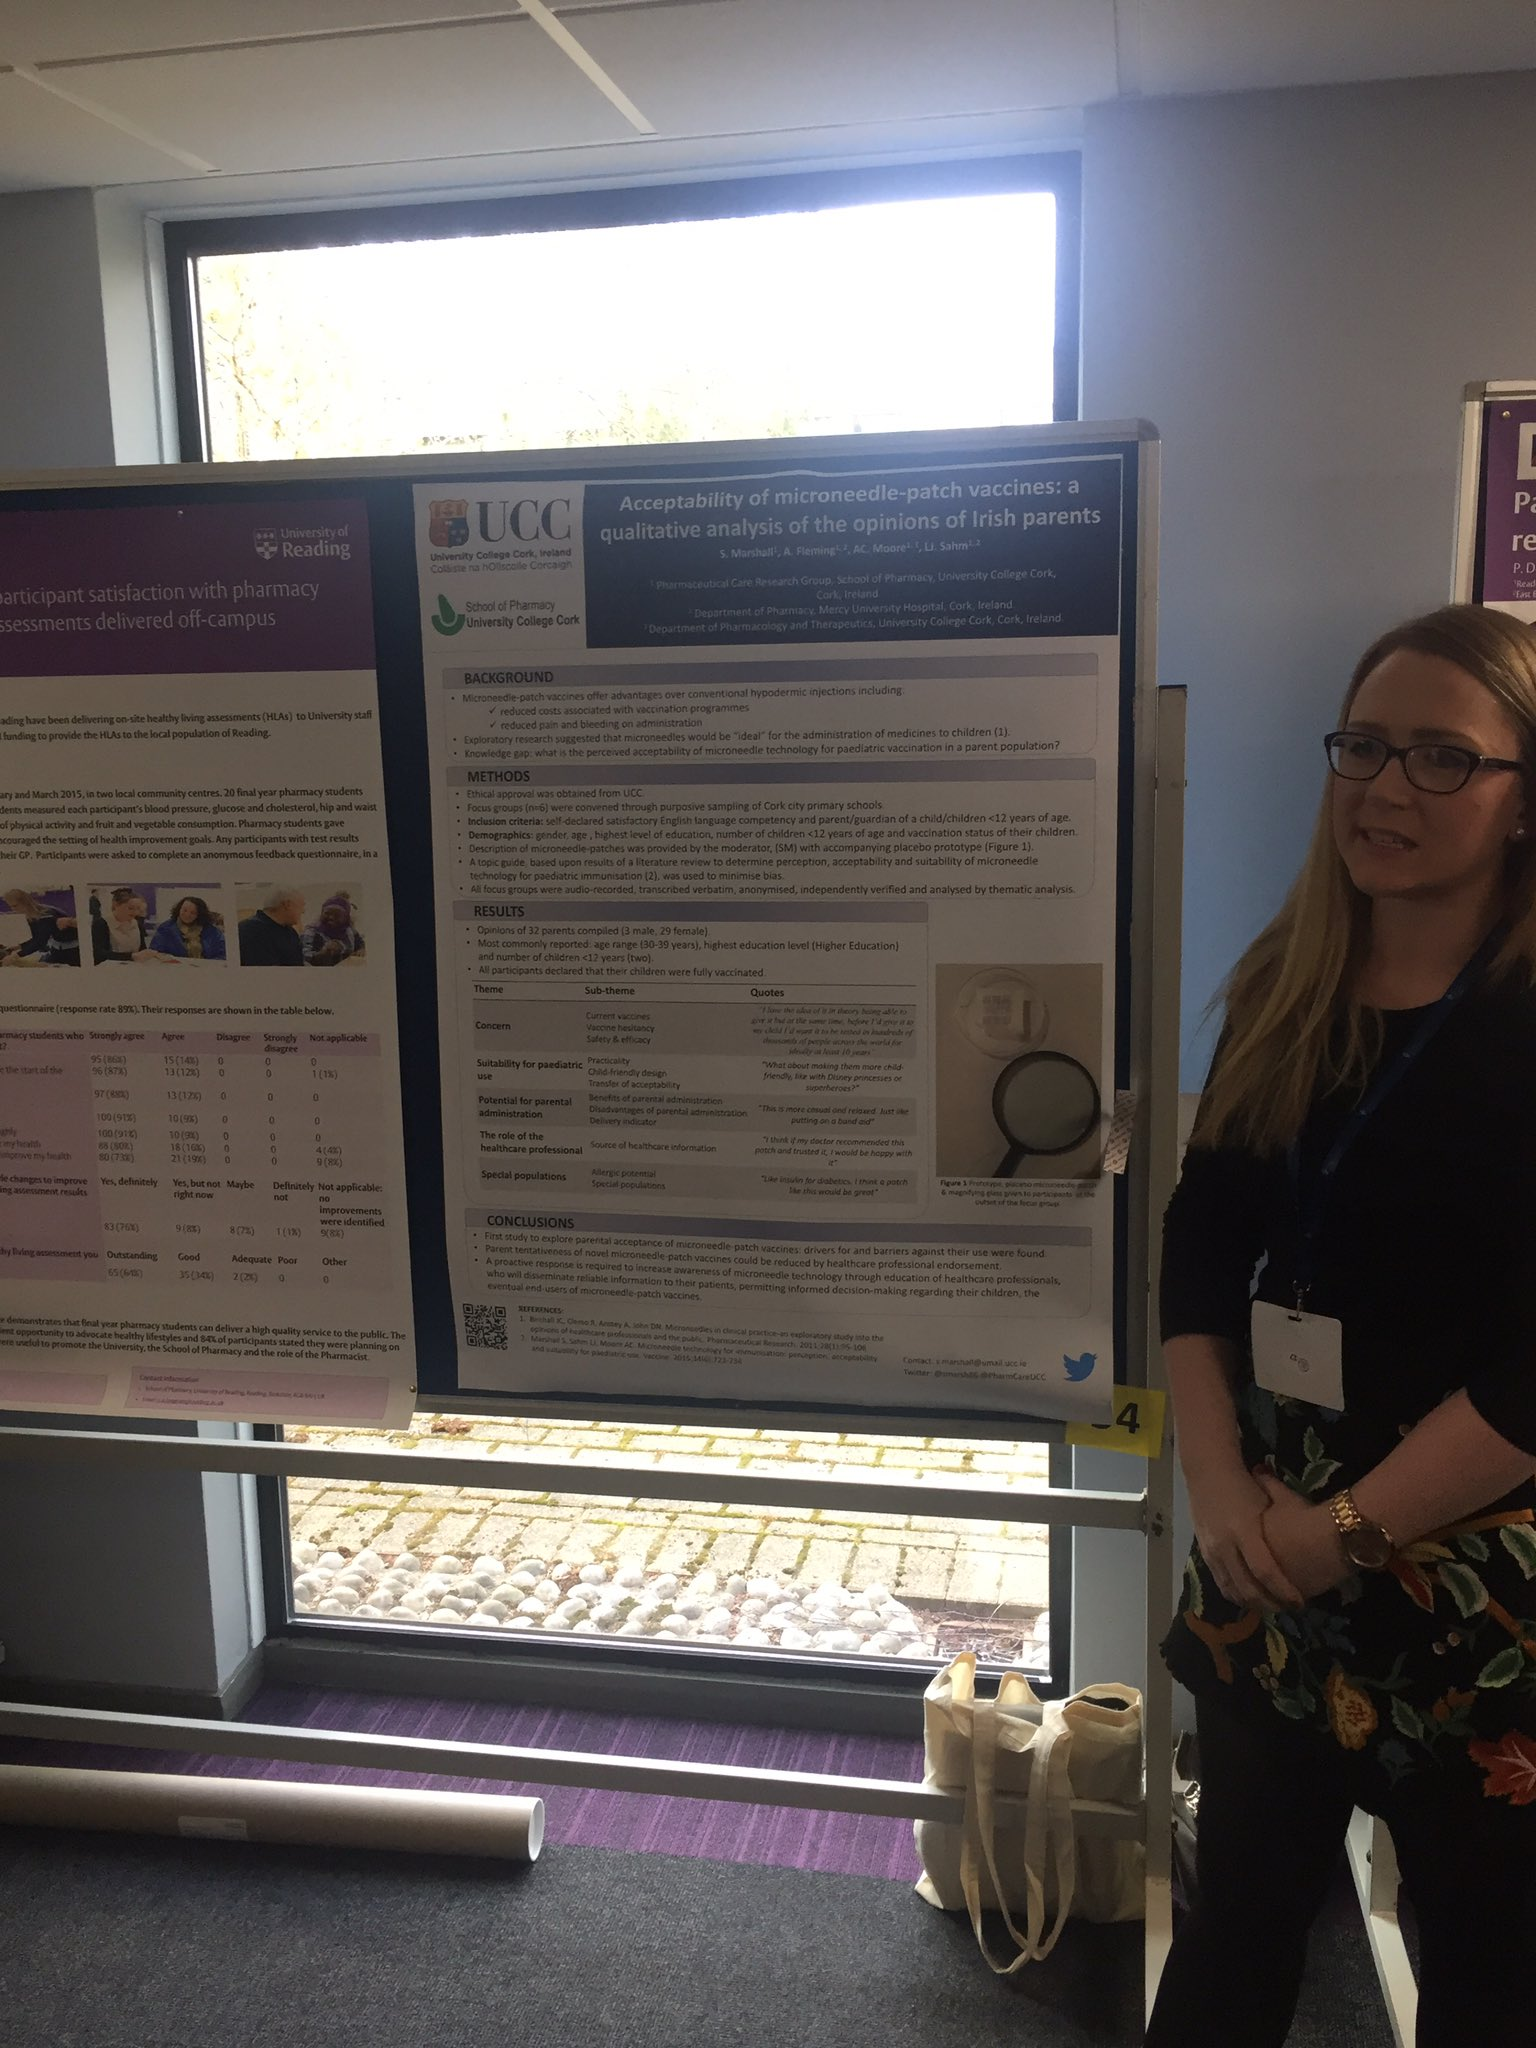 Great poster talk by Sarah Marshall.@PharmCareUCC  at #hsrpp2017   Well done Sarah https://t.co/TD1wARRDXw